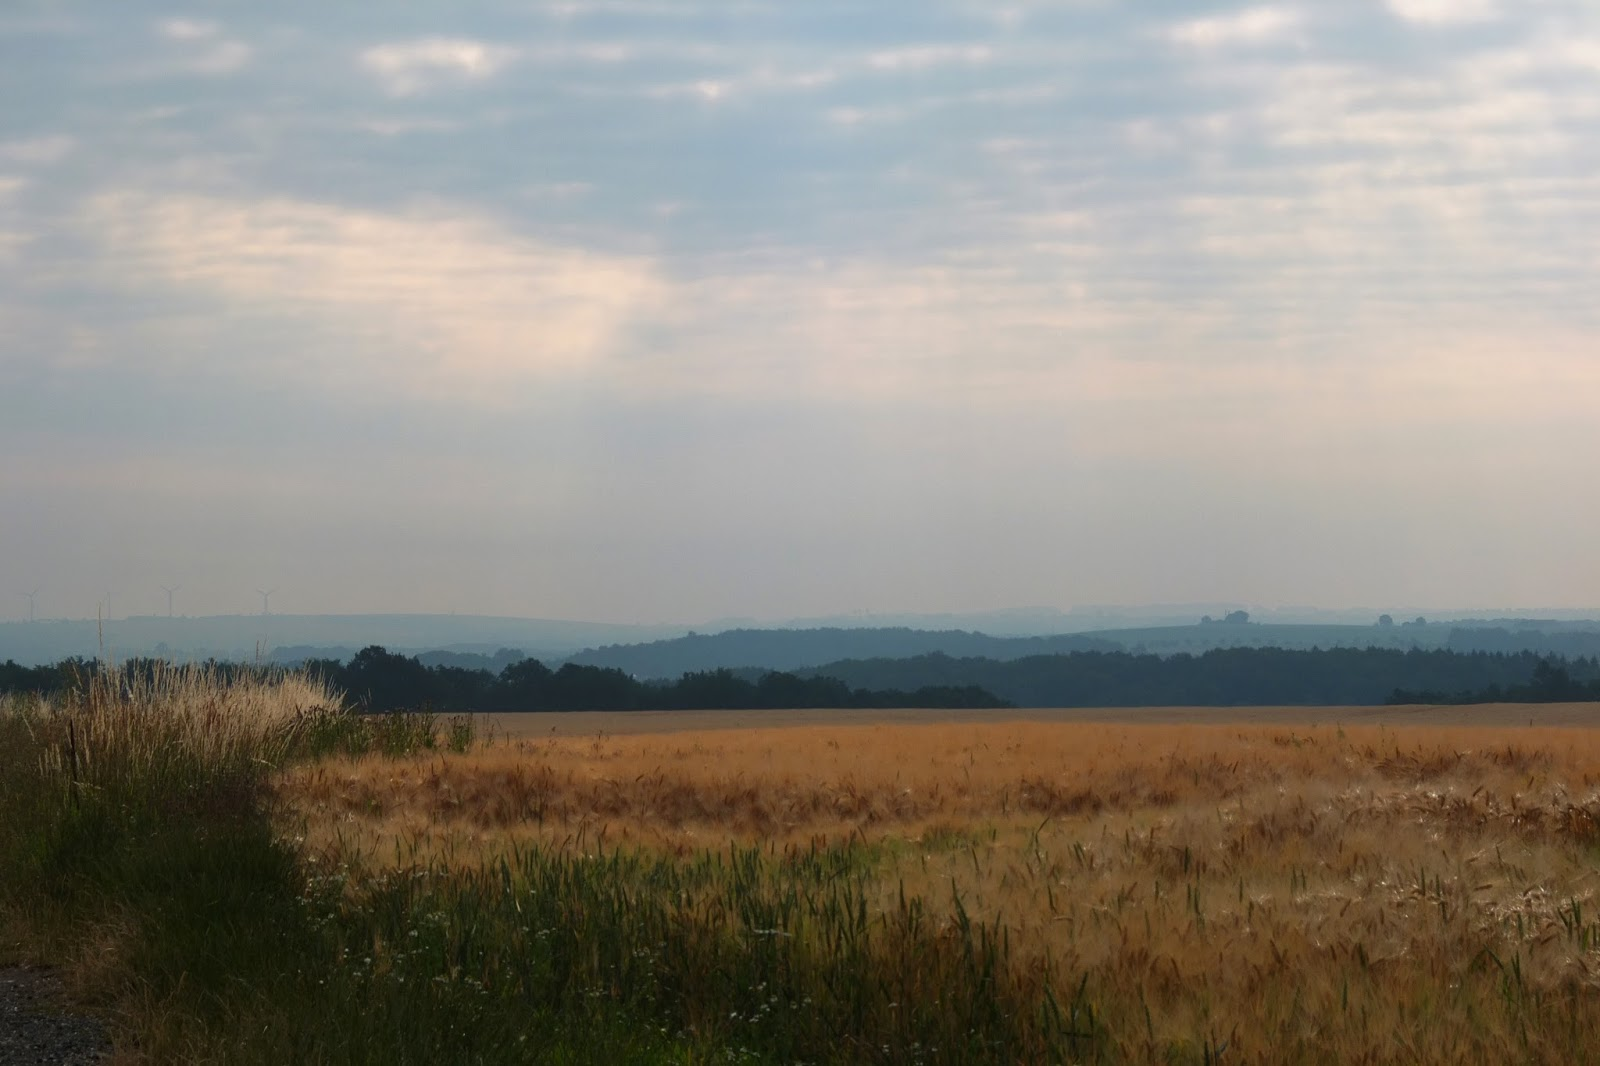 Golden fields with mountains in the distance somewhere in Germany.